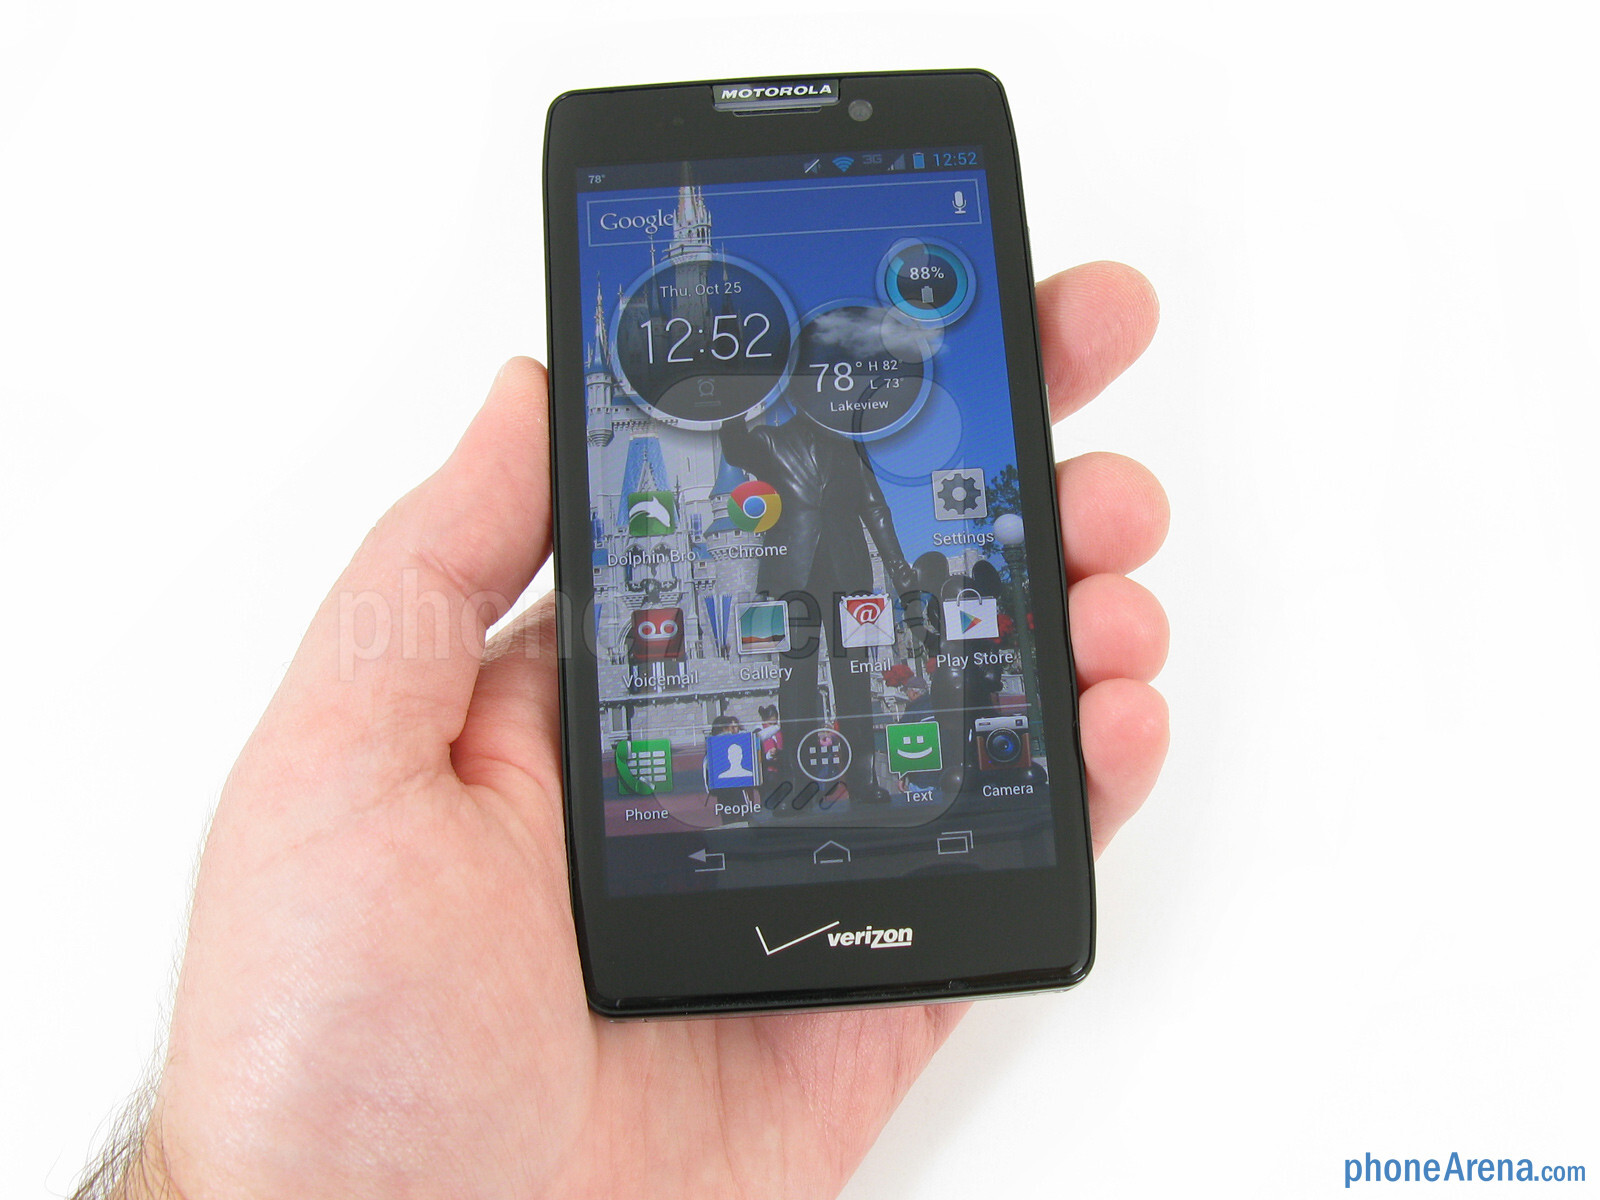 The Motorola DROID RAZR MAXX HD fits quite comfortably in the hand or